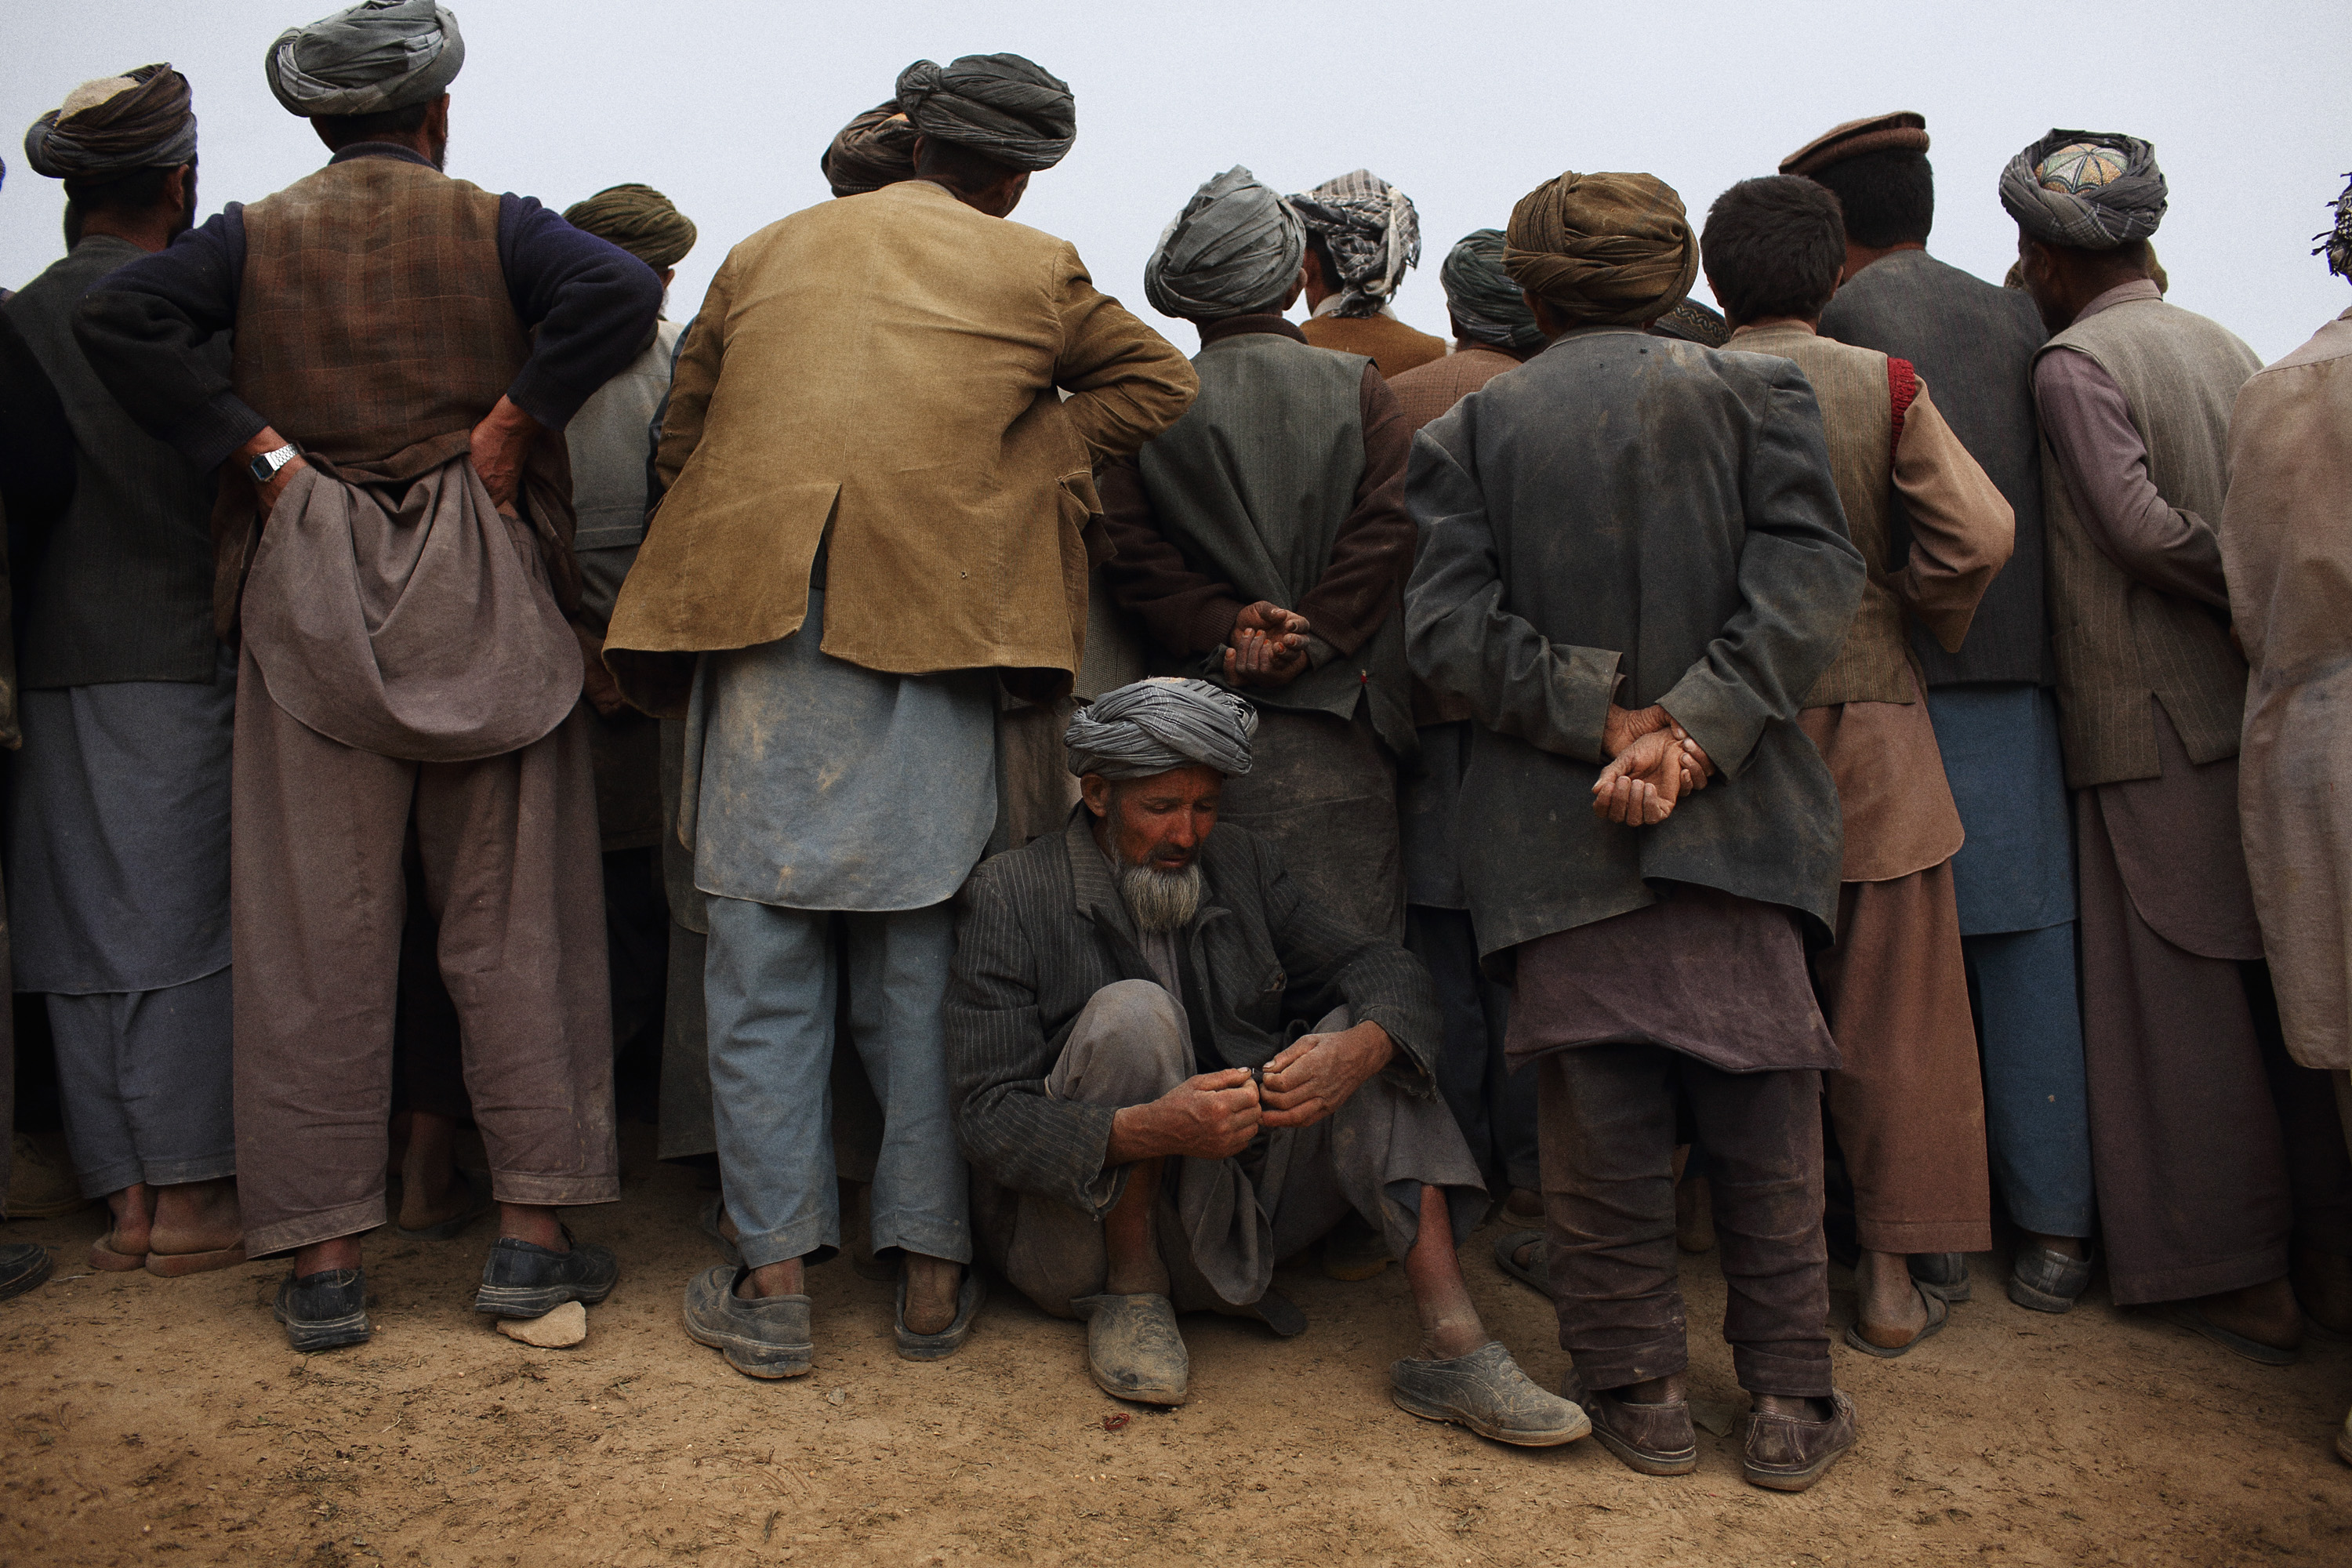 A meeting is held in the center of the village following clashes between police and locals, May 6, 2014.